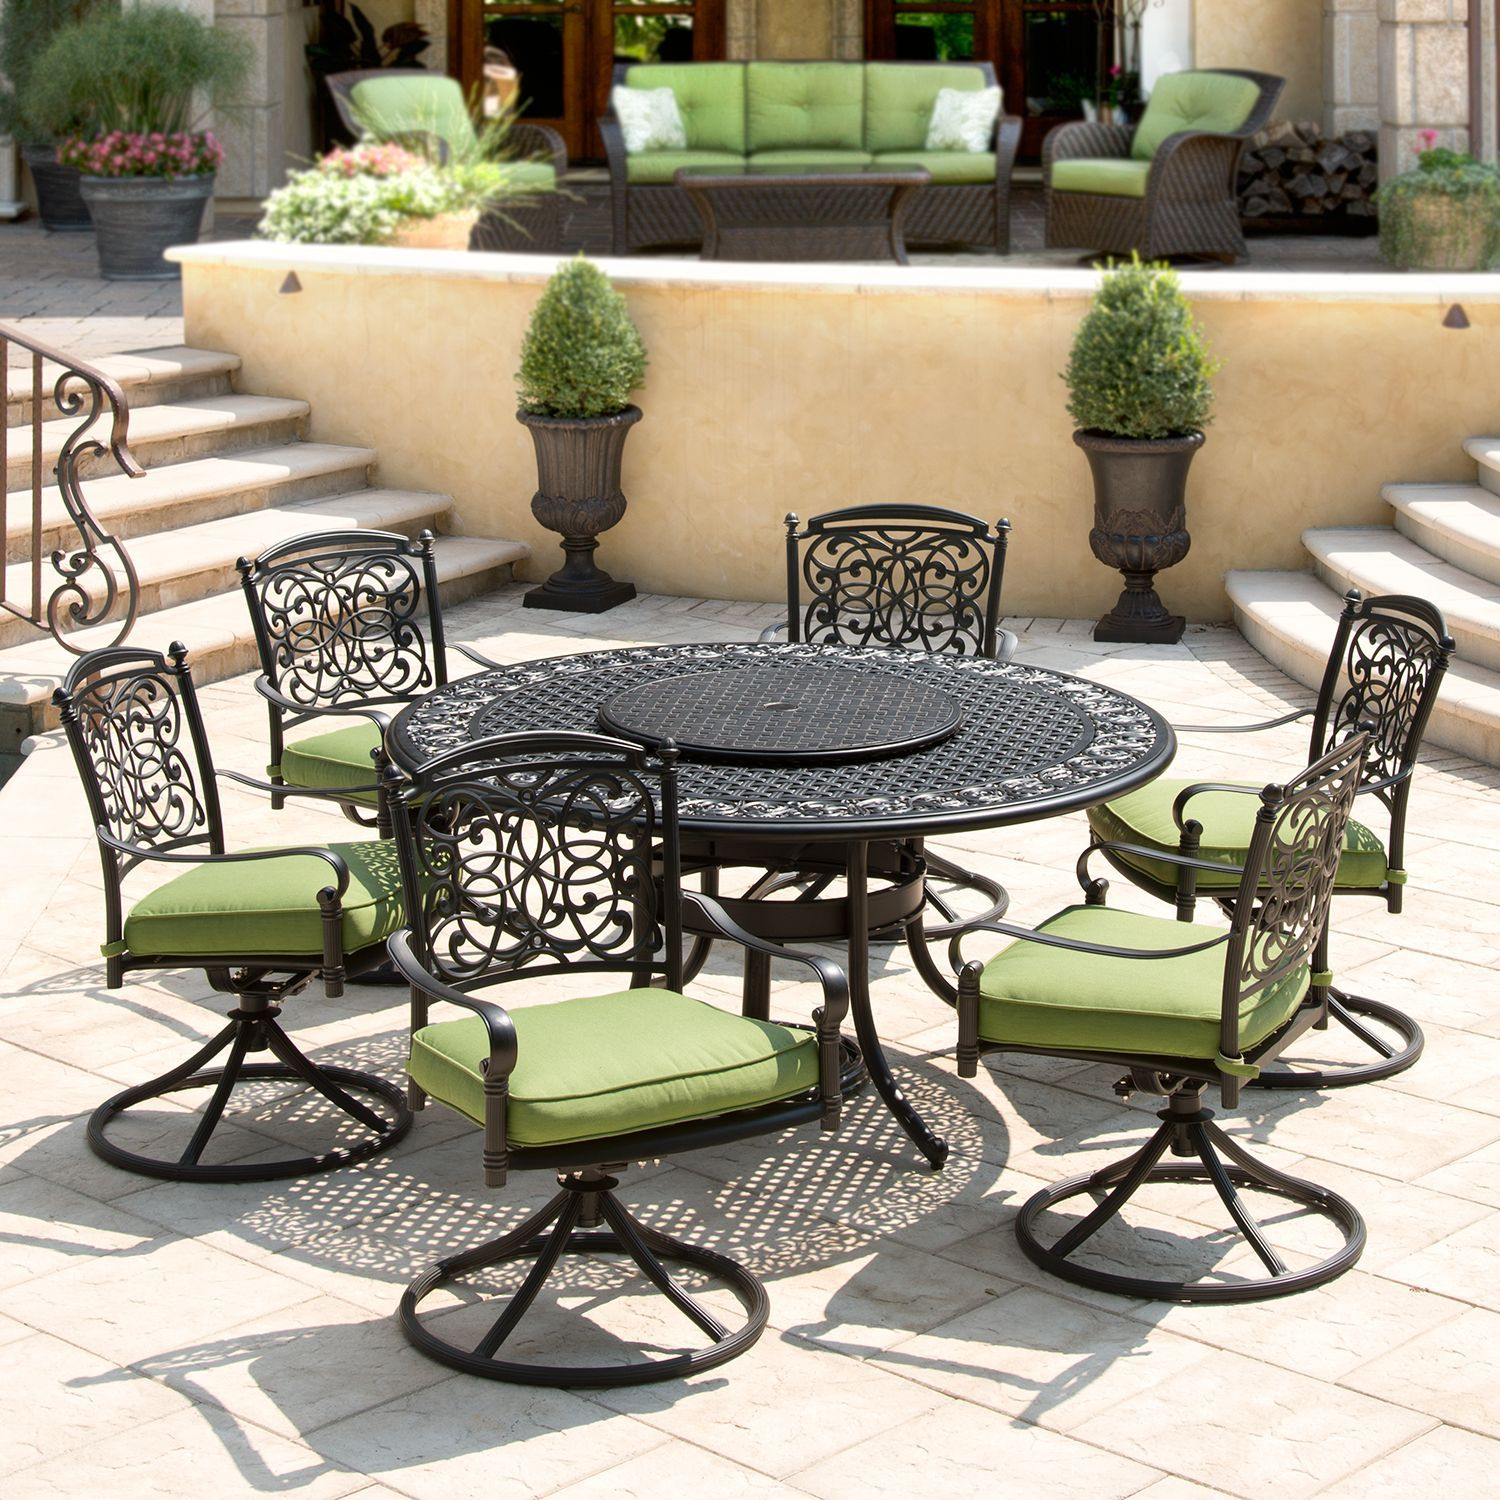 Renaissance Outdoor Patio Dining Set   9 Pc